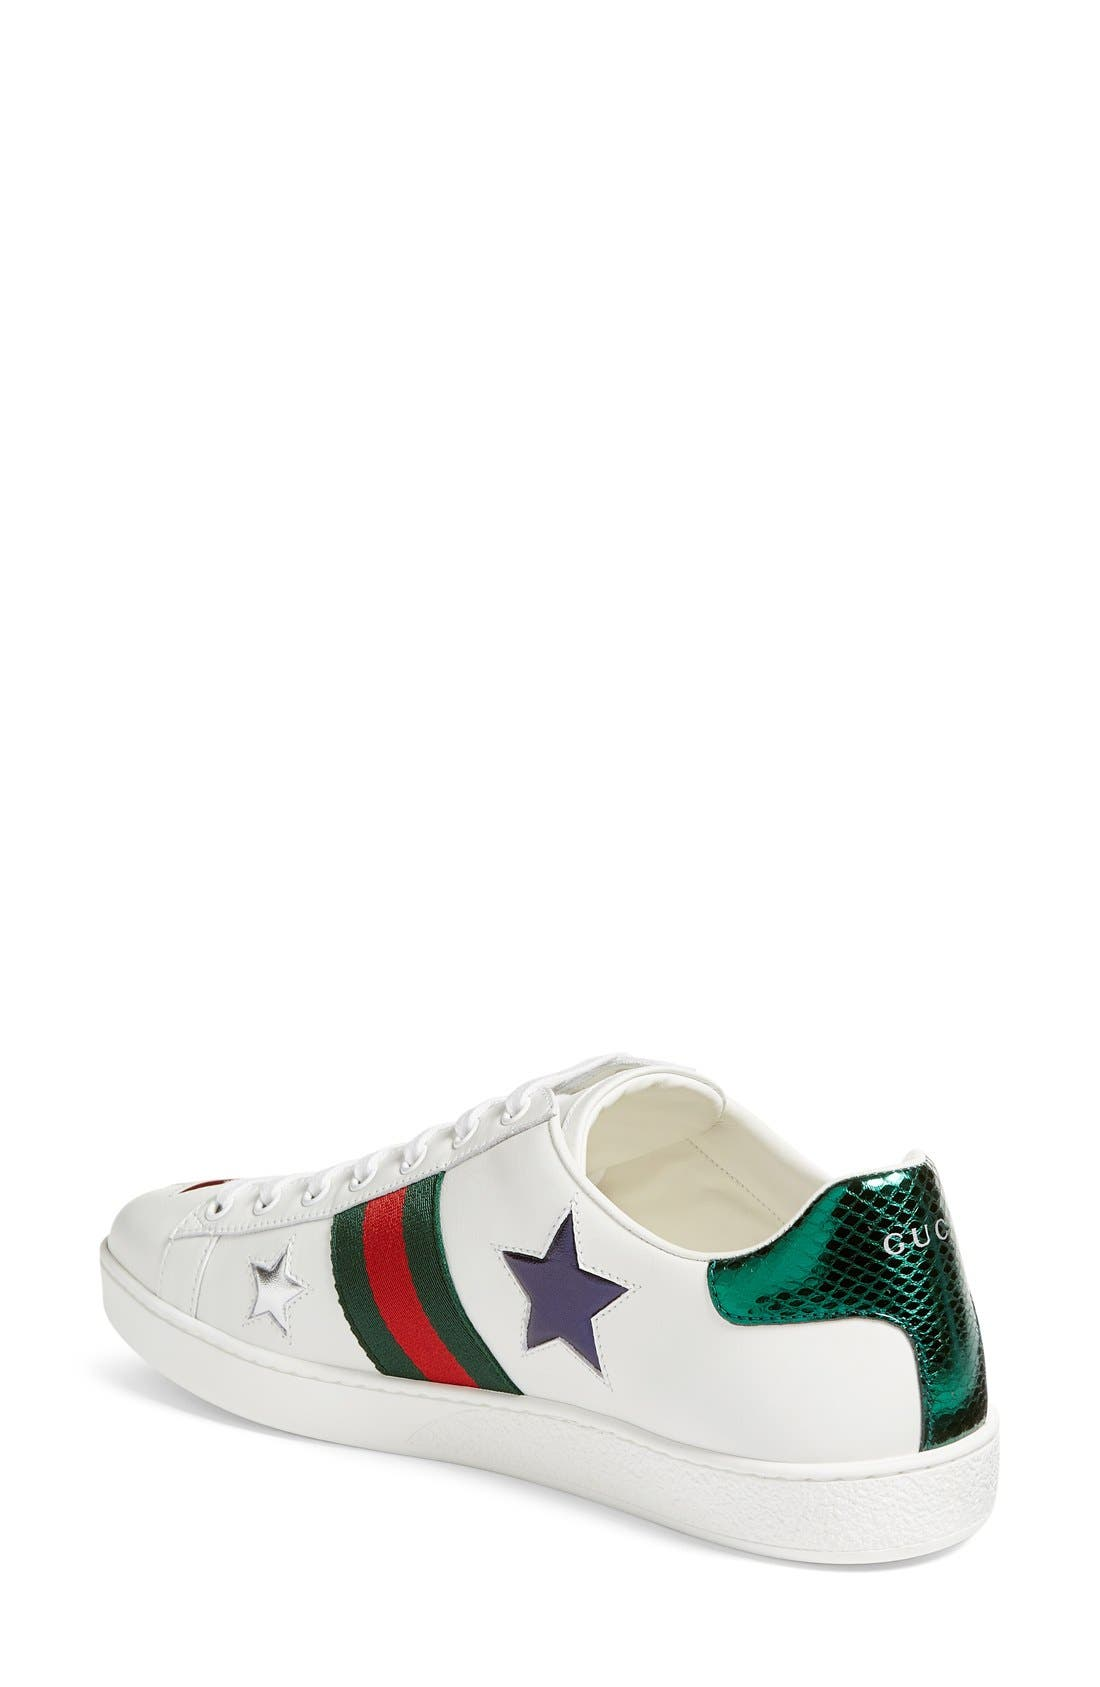 New Ace Star Sneaker,                             Alternate thumbnail 2, color,                             White Multi